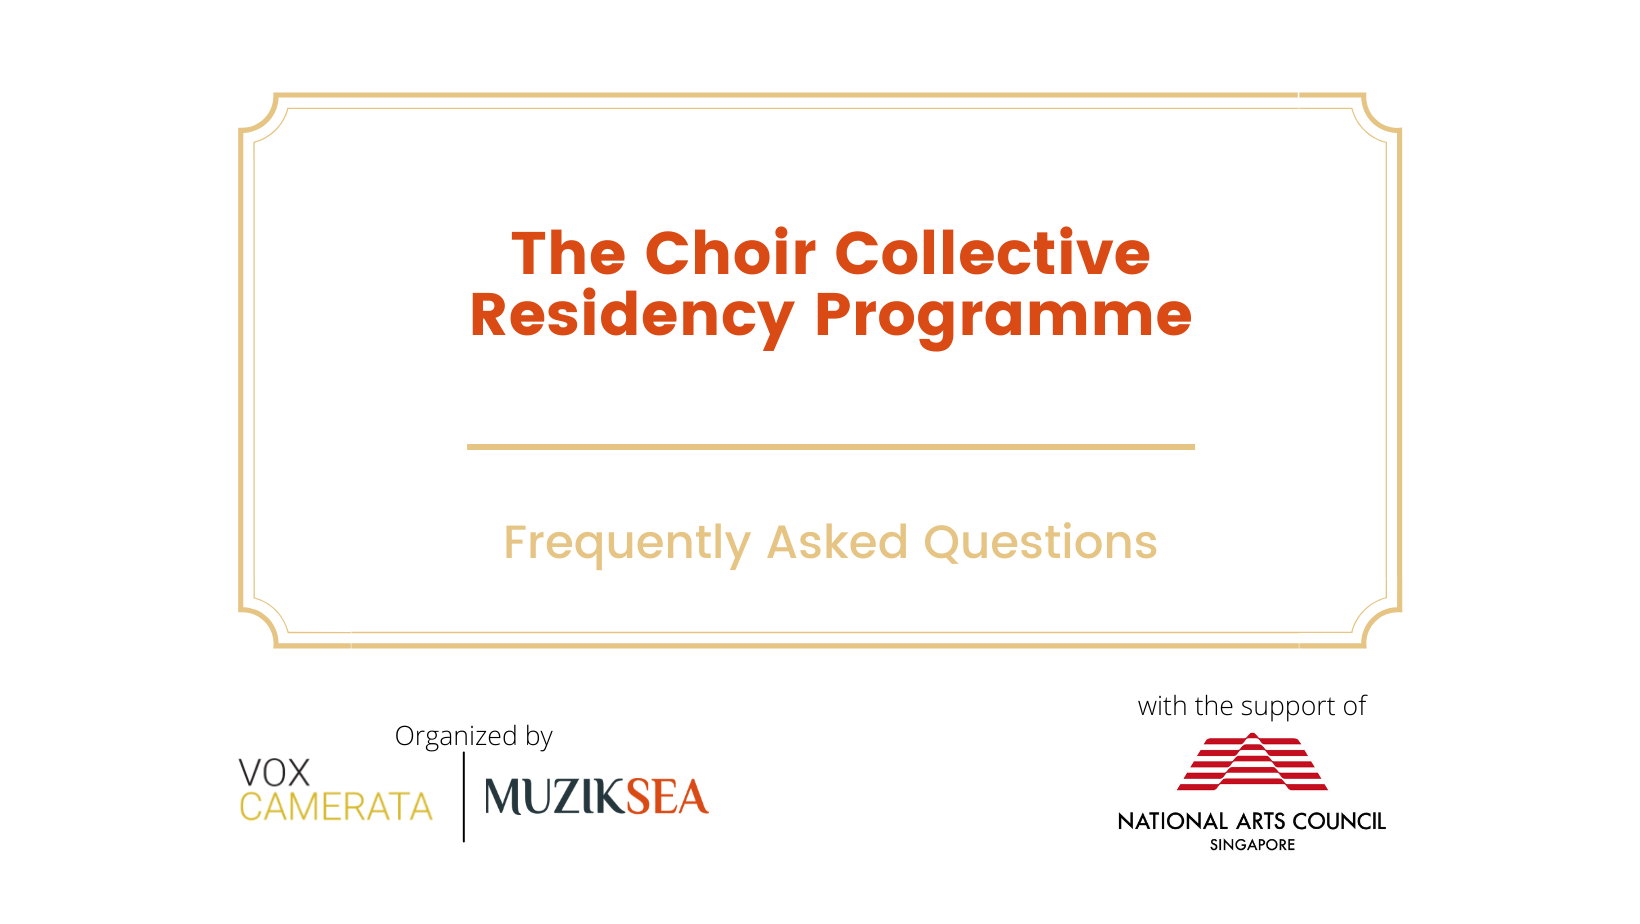 The Choral Collective Residency Programme (FAQs)